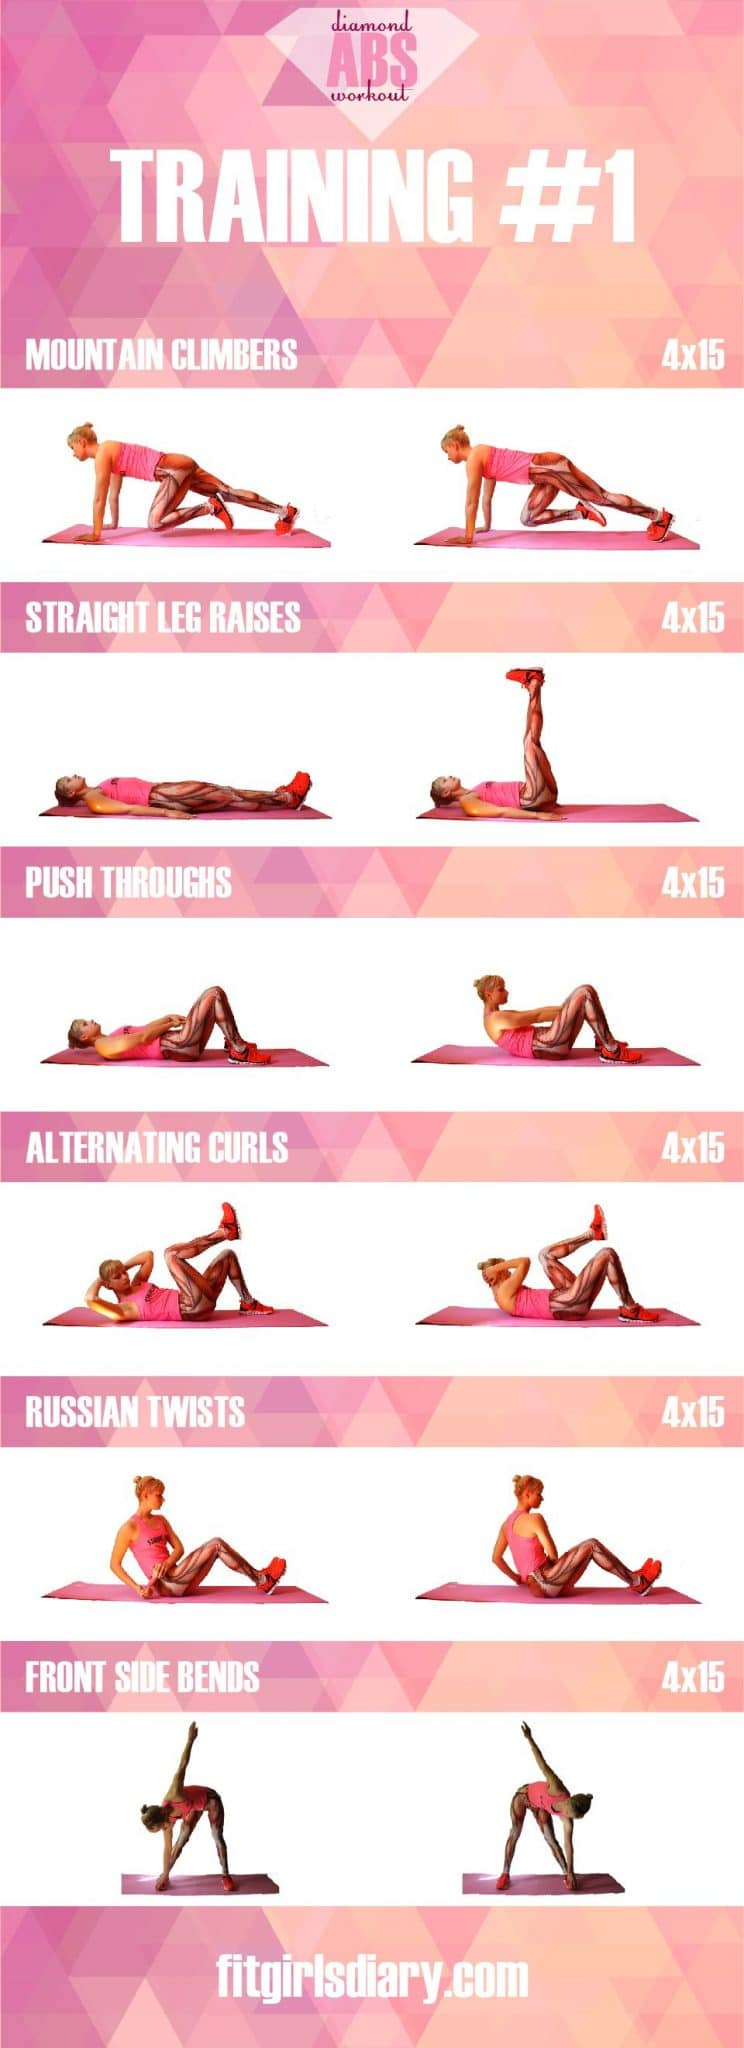 Training 1 Diamond Abs Workout